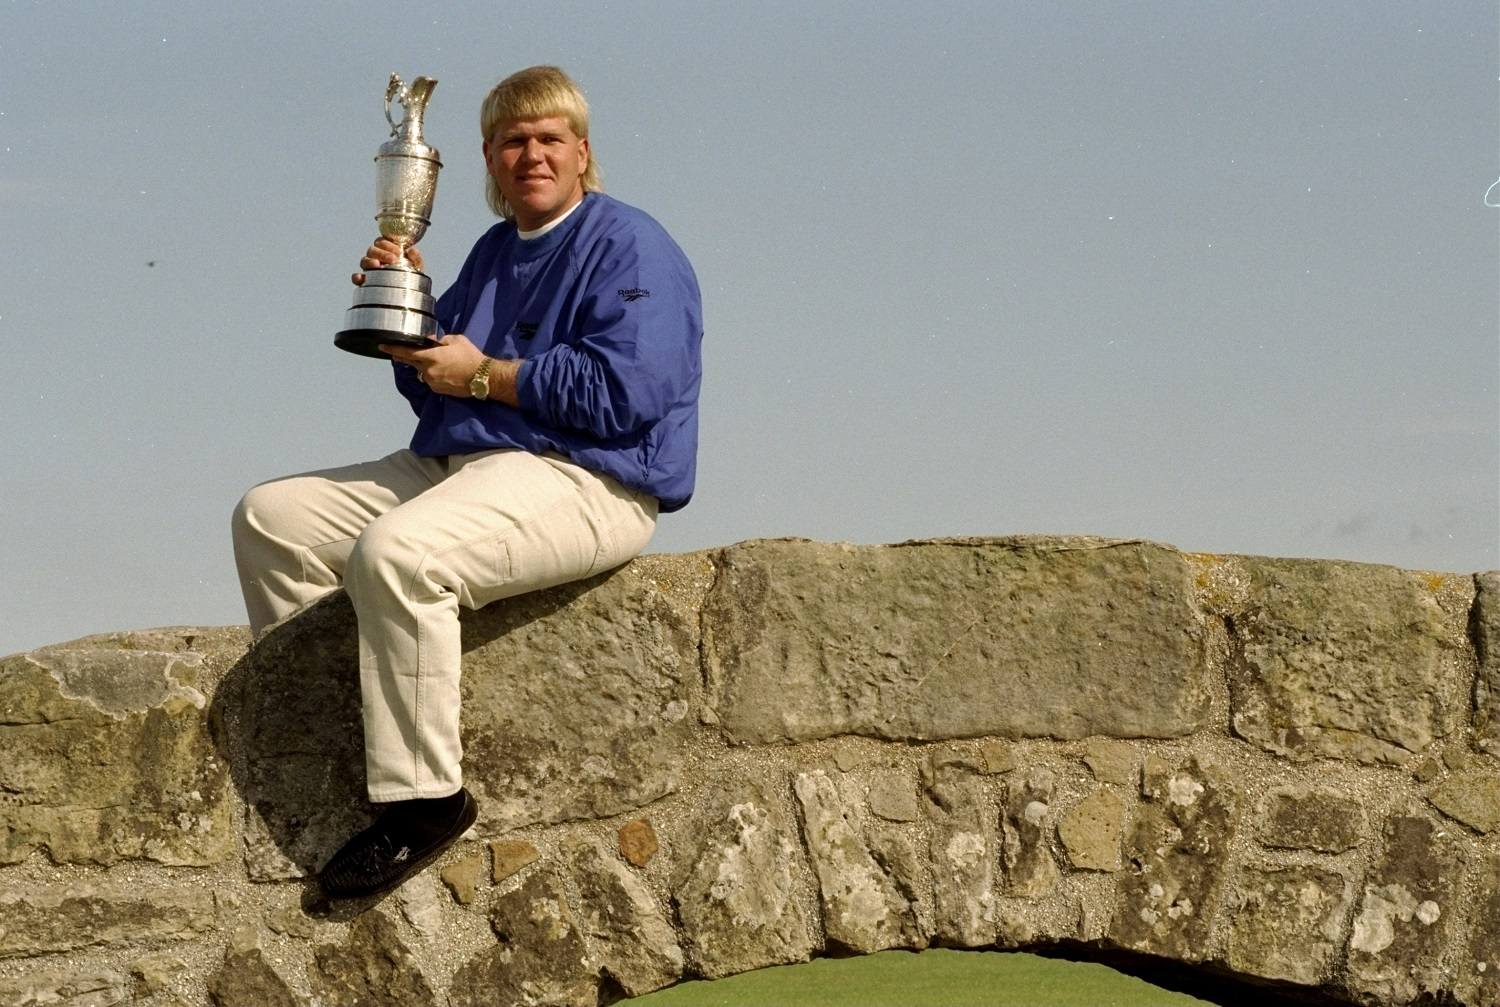 John Daly Put Integrity Ahead of $1 Million at the British Open